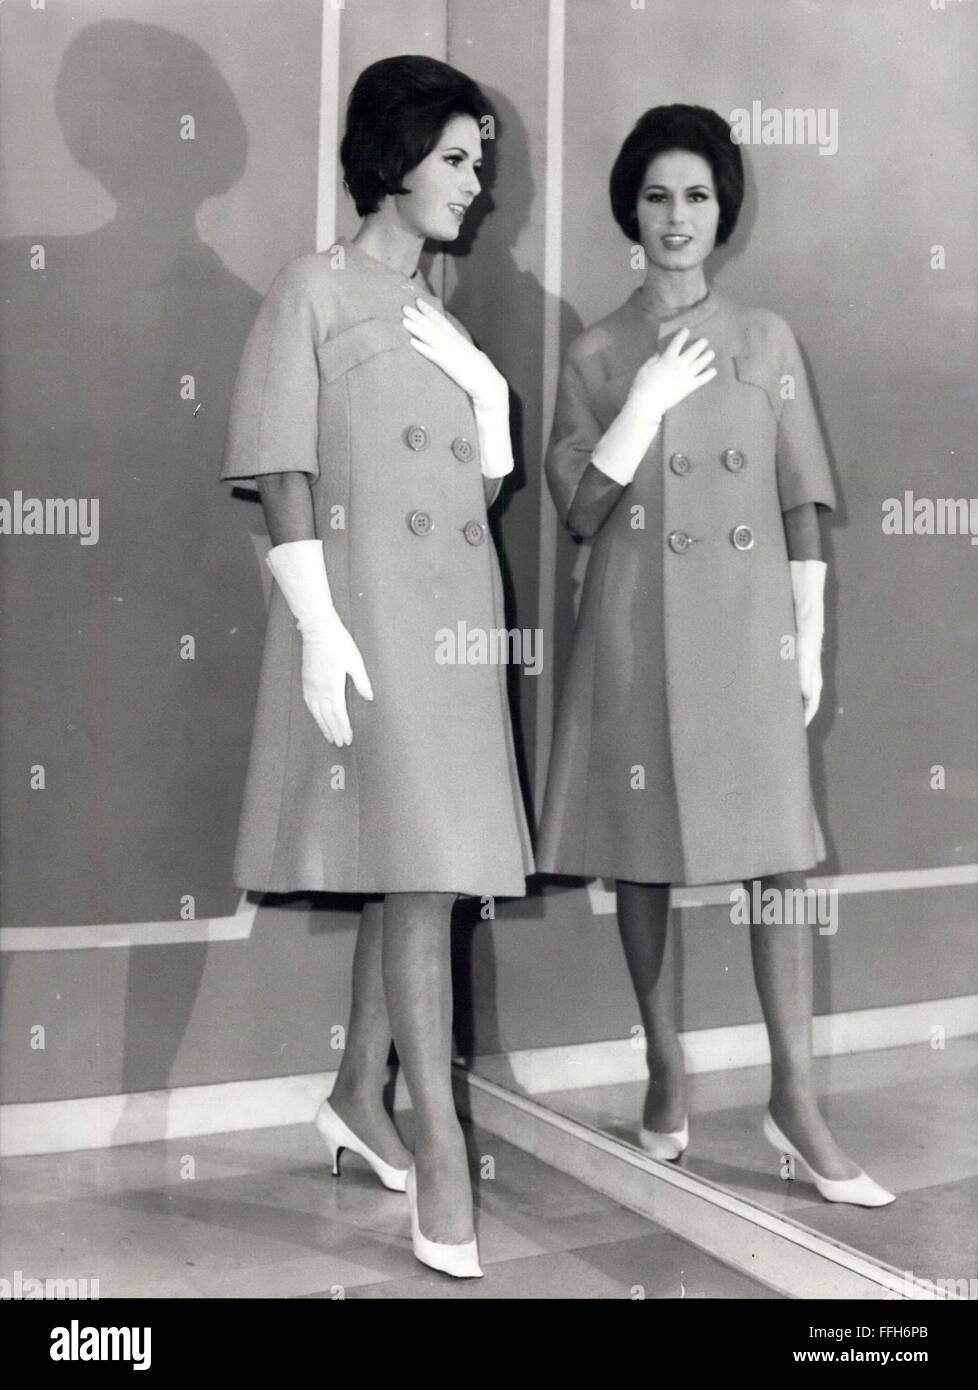 de5ad1fa775f 1966 - Some models of the spring-summer season presented at the well-known  atelier of De Berentzen. A very simple modern style for the italian women.